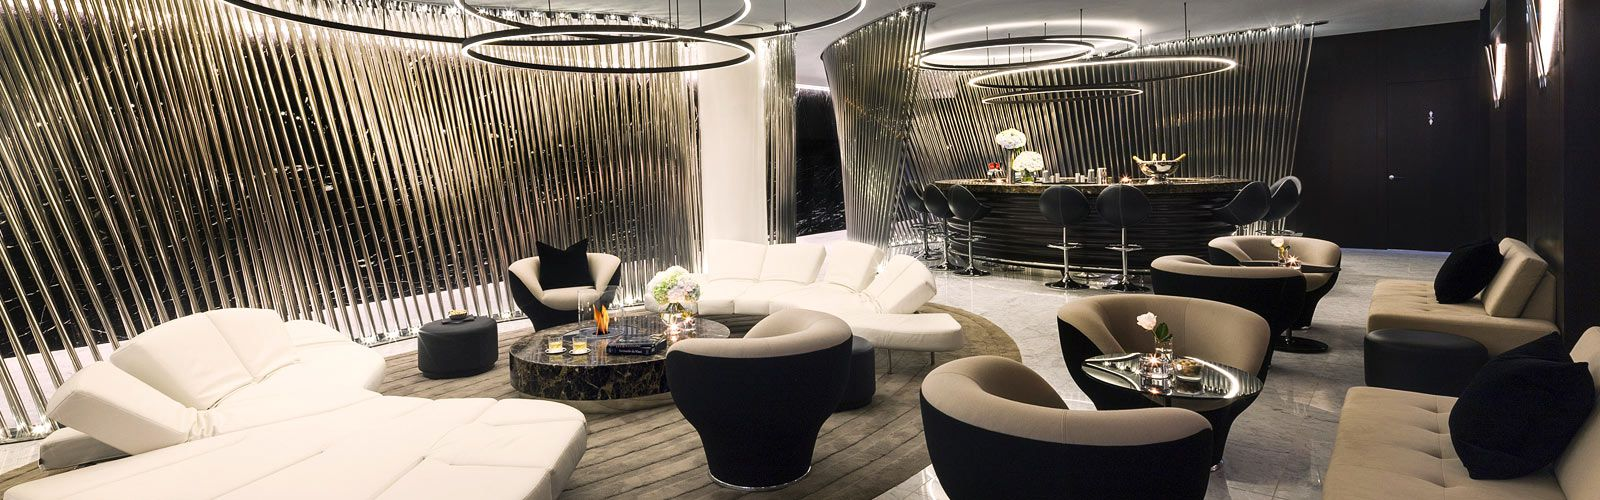 Want To Stay Luxury In London? You Must Try here! (3)